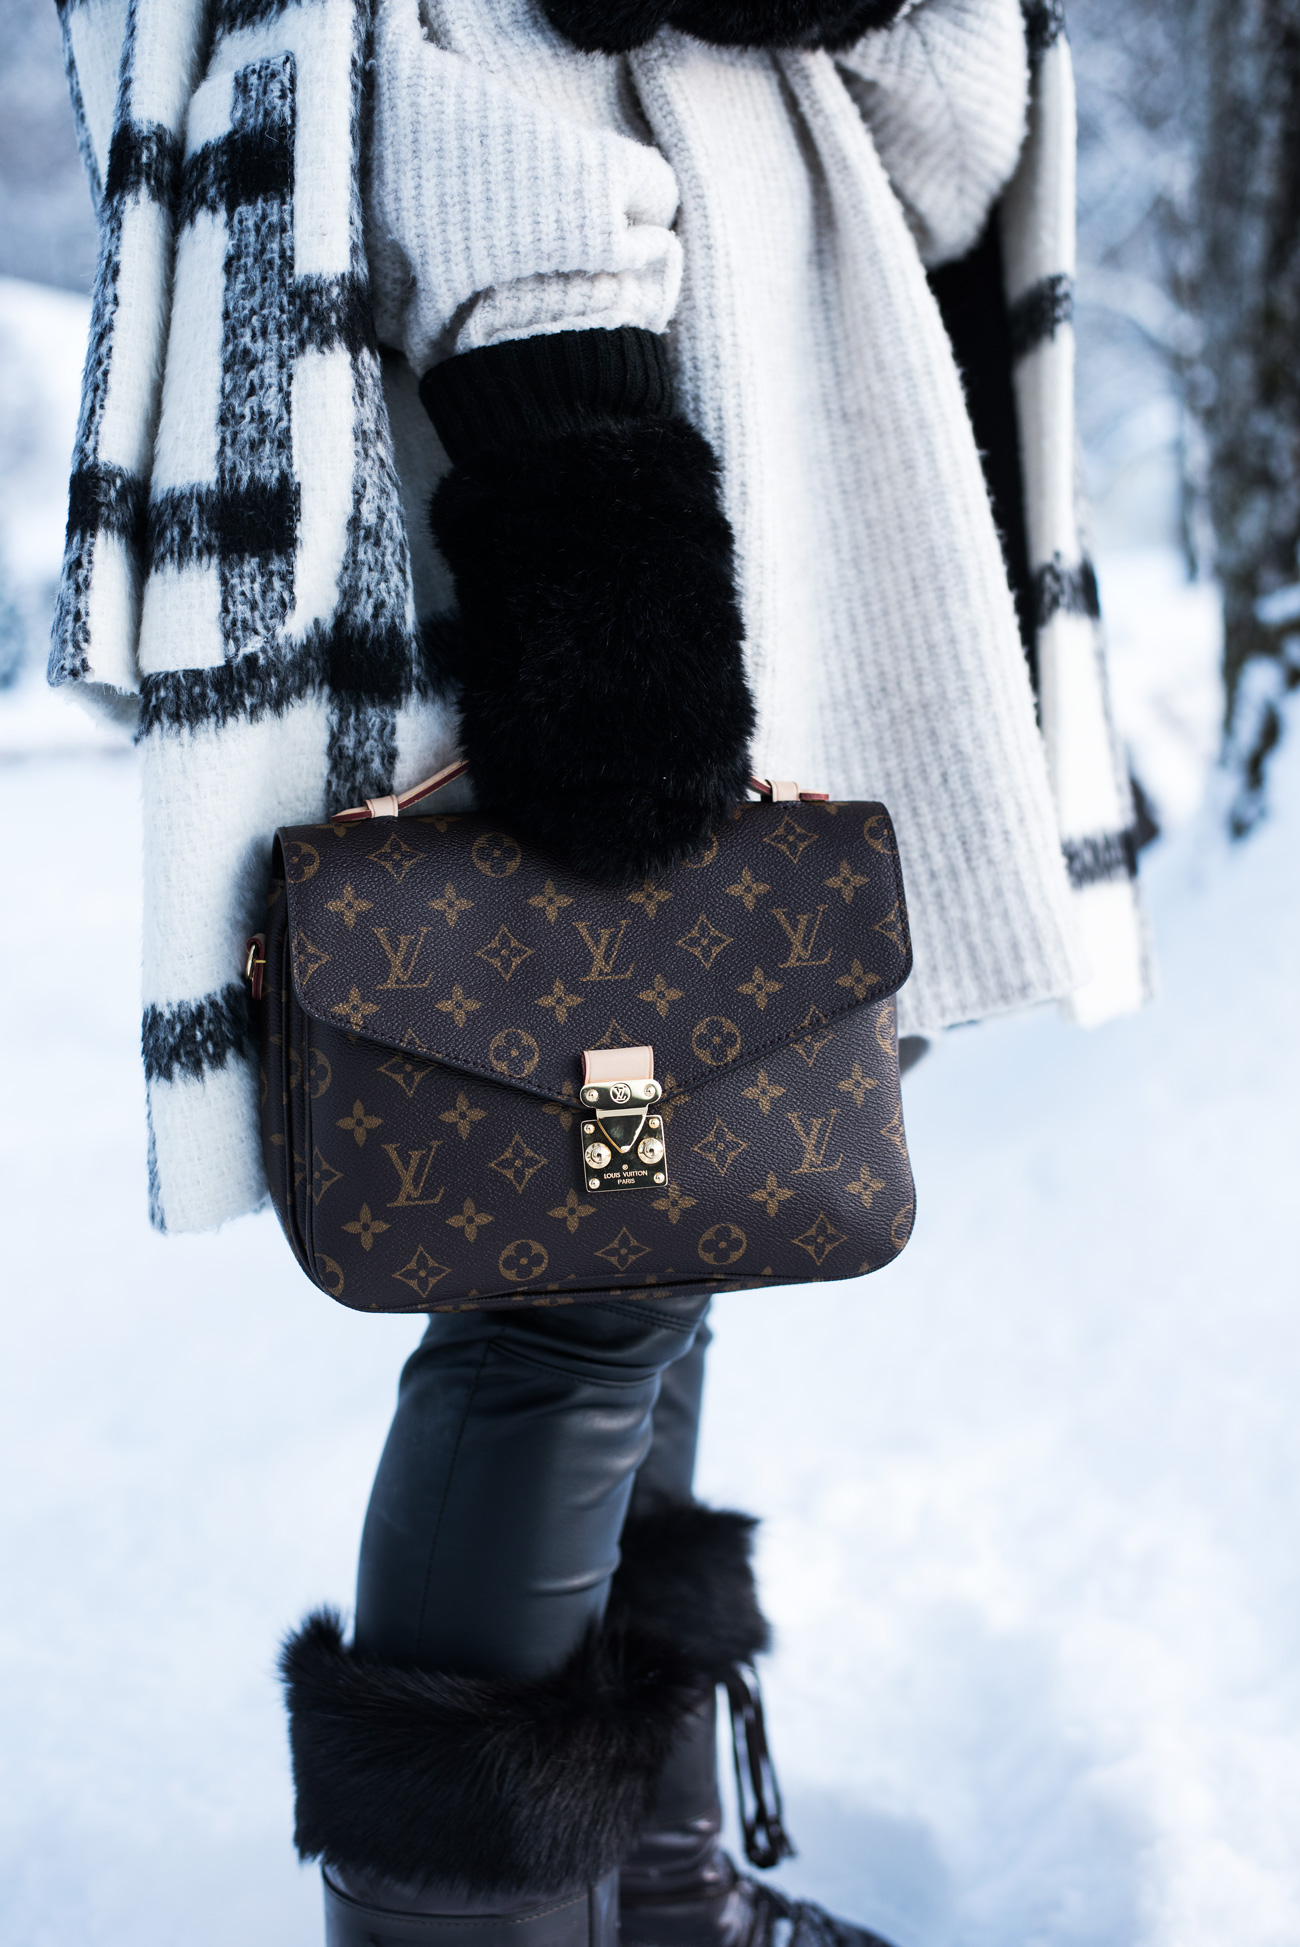 winter-layering-look-fell-handschuhe-fäustlinge-fashiioncarpet-louis-vuitton-metis-pochette